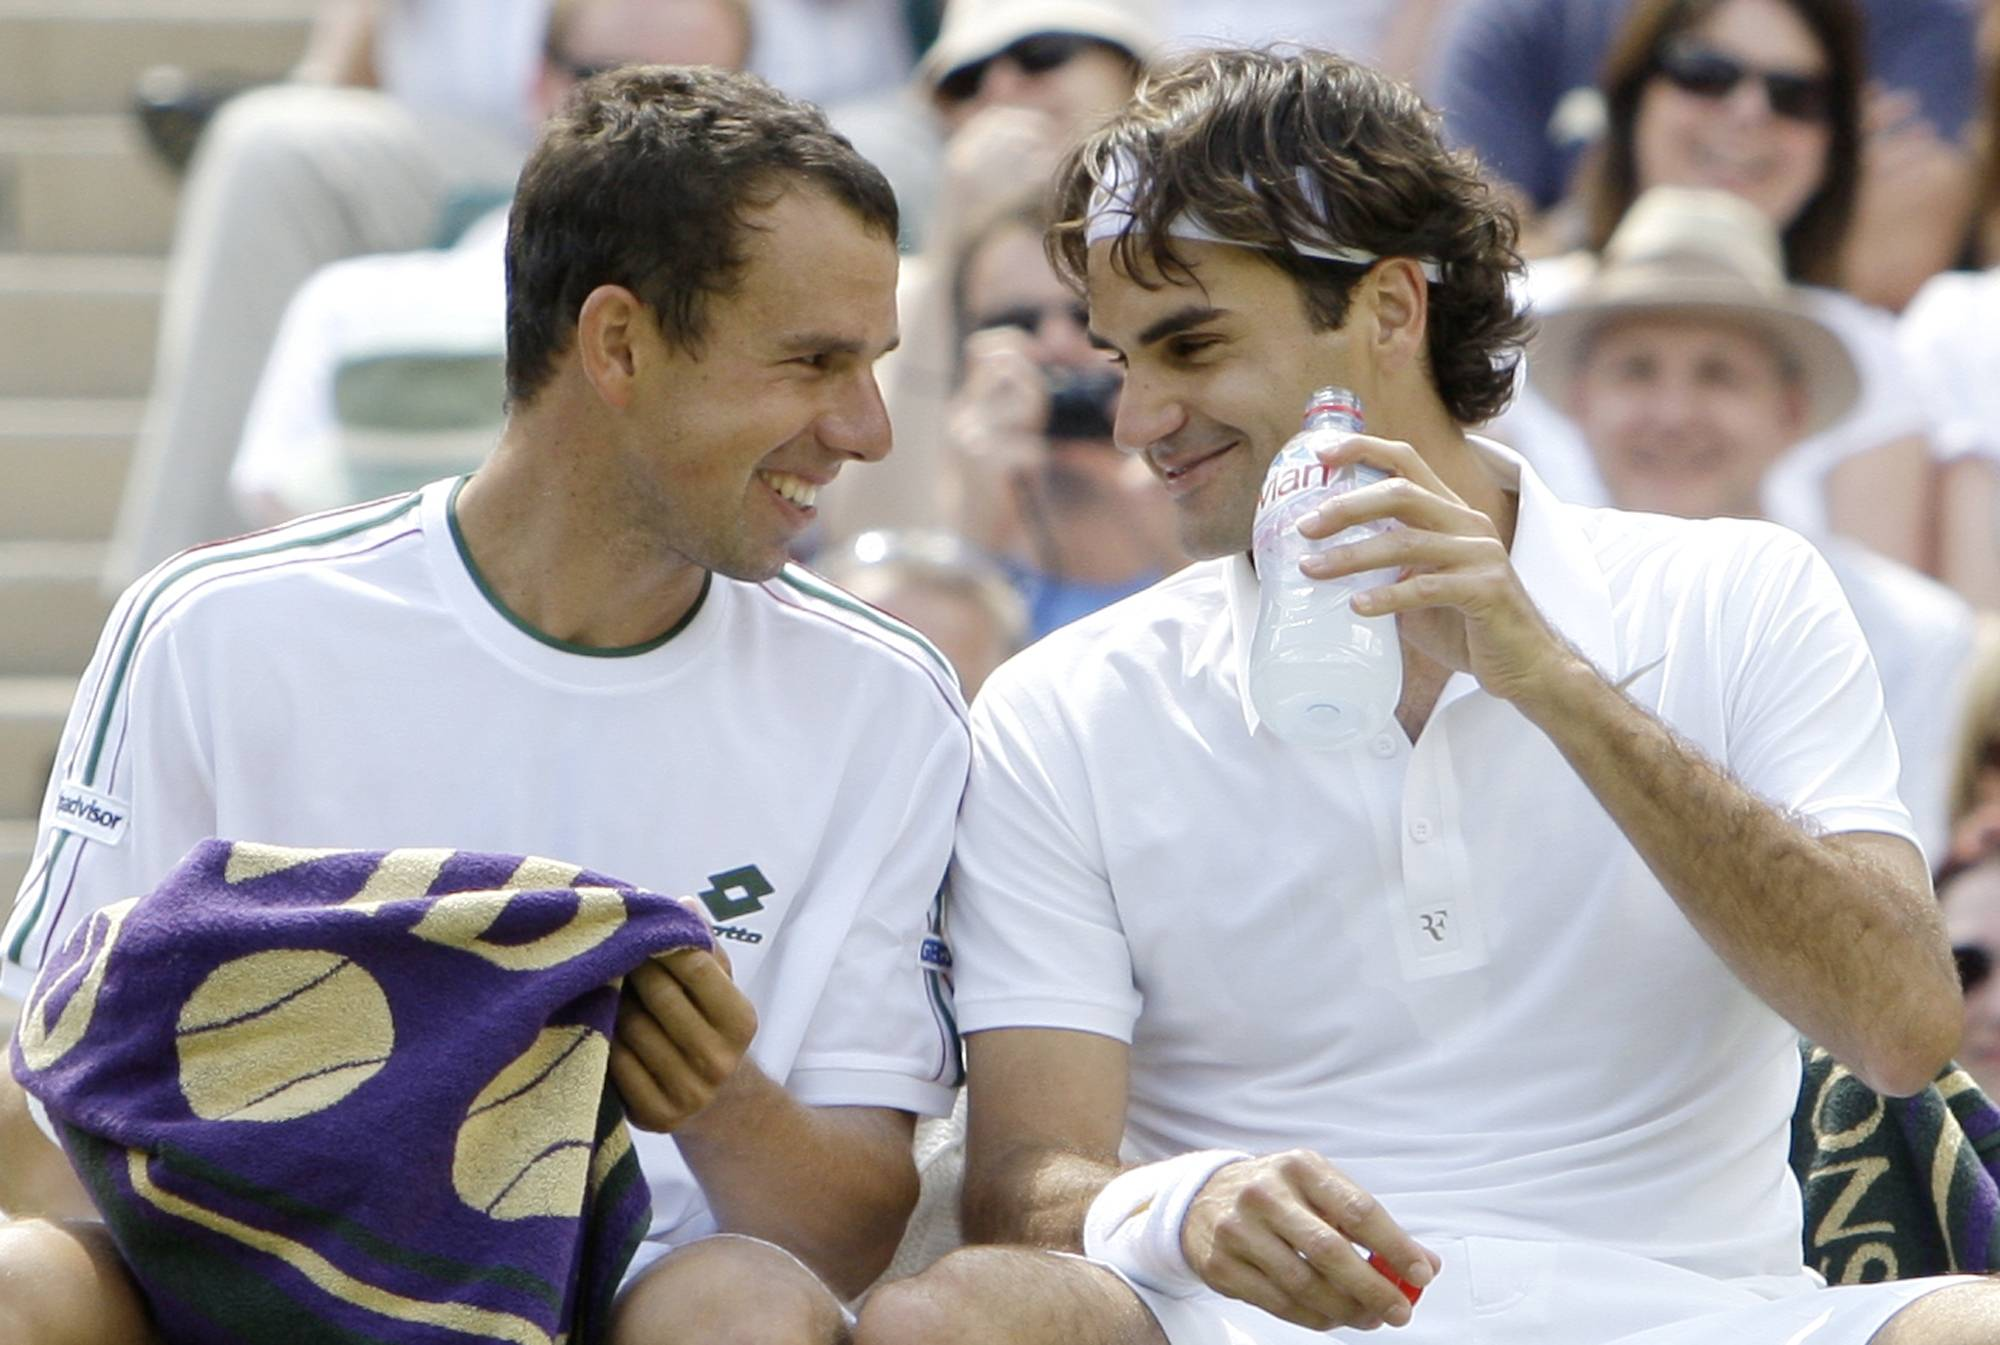 Federer shares a joke with Slovakia's Dominik Hrbaty, as they sit alongside each other, during their Men's Singles, first round match on the Centre Court at Wimbledon, Monday, June 23, 2008.